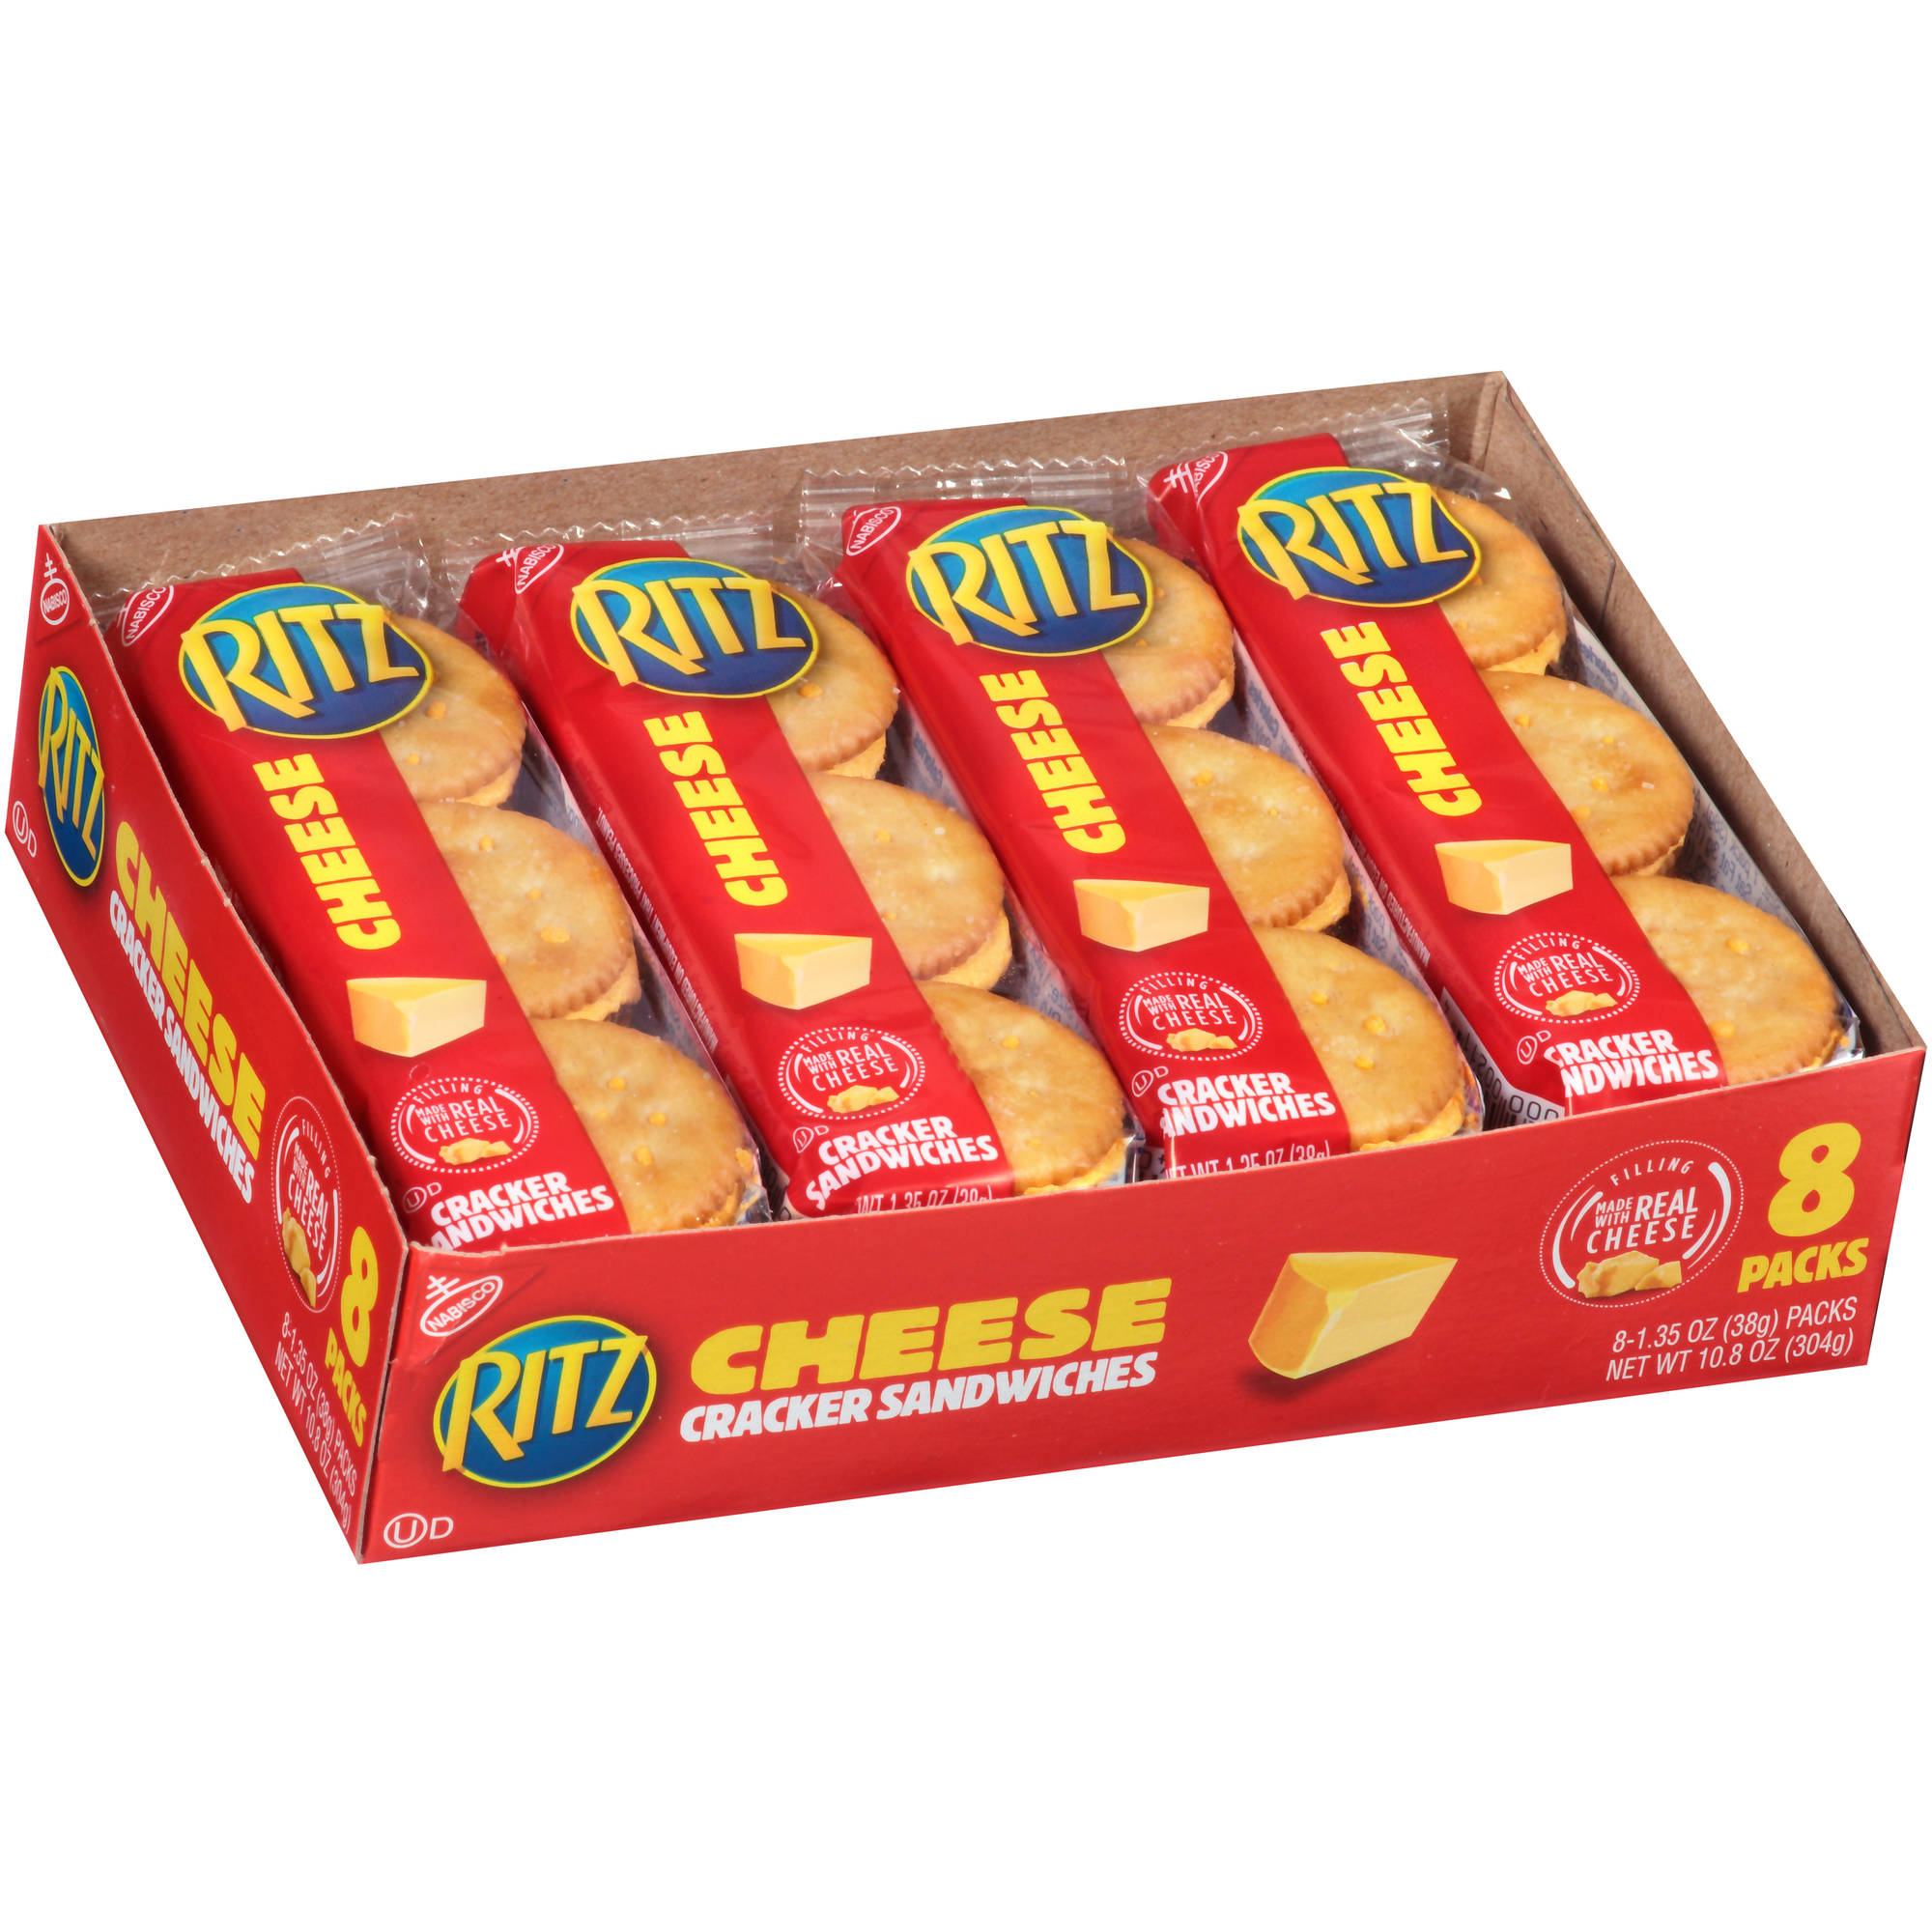 Nabisco Ritz Cheese Cracker Sandwiches, 1.35 oz, 8 count